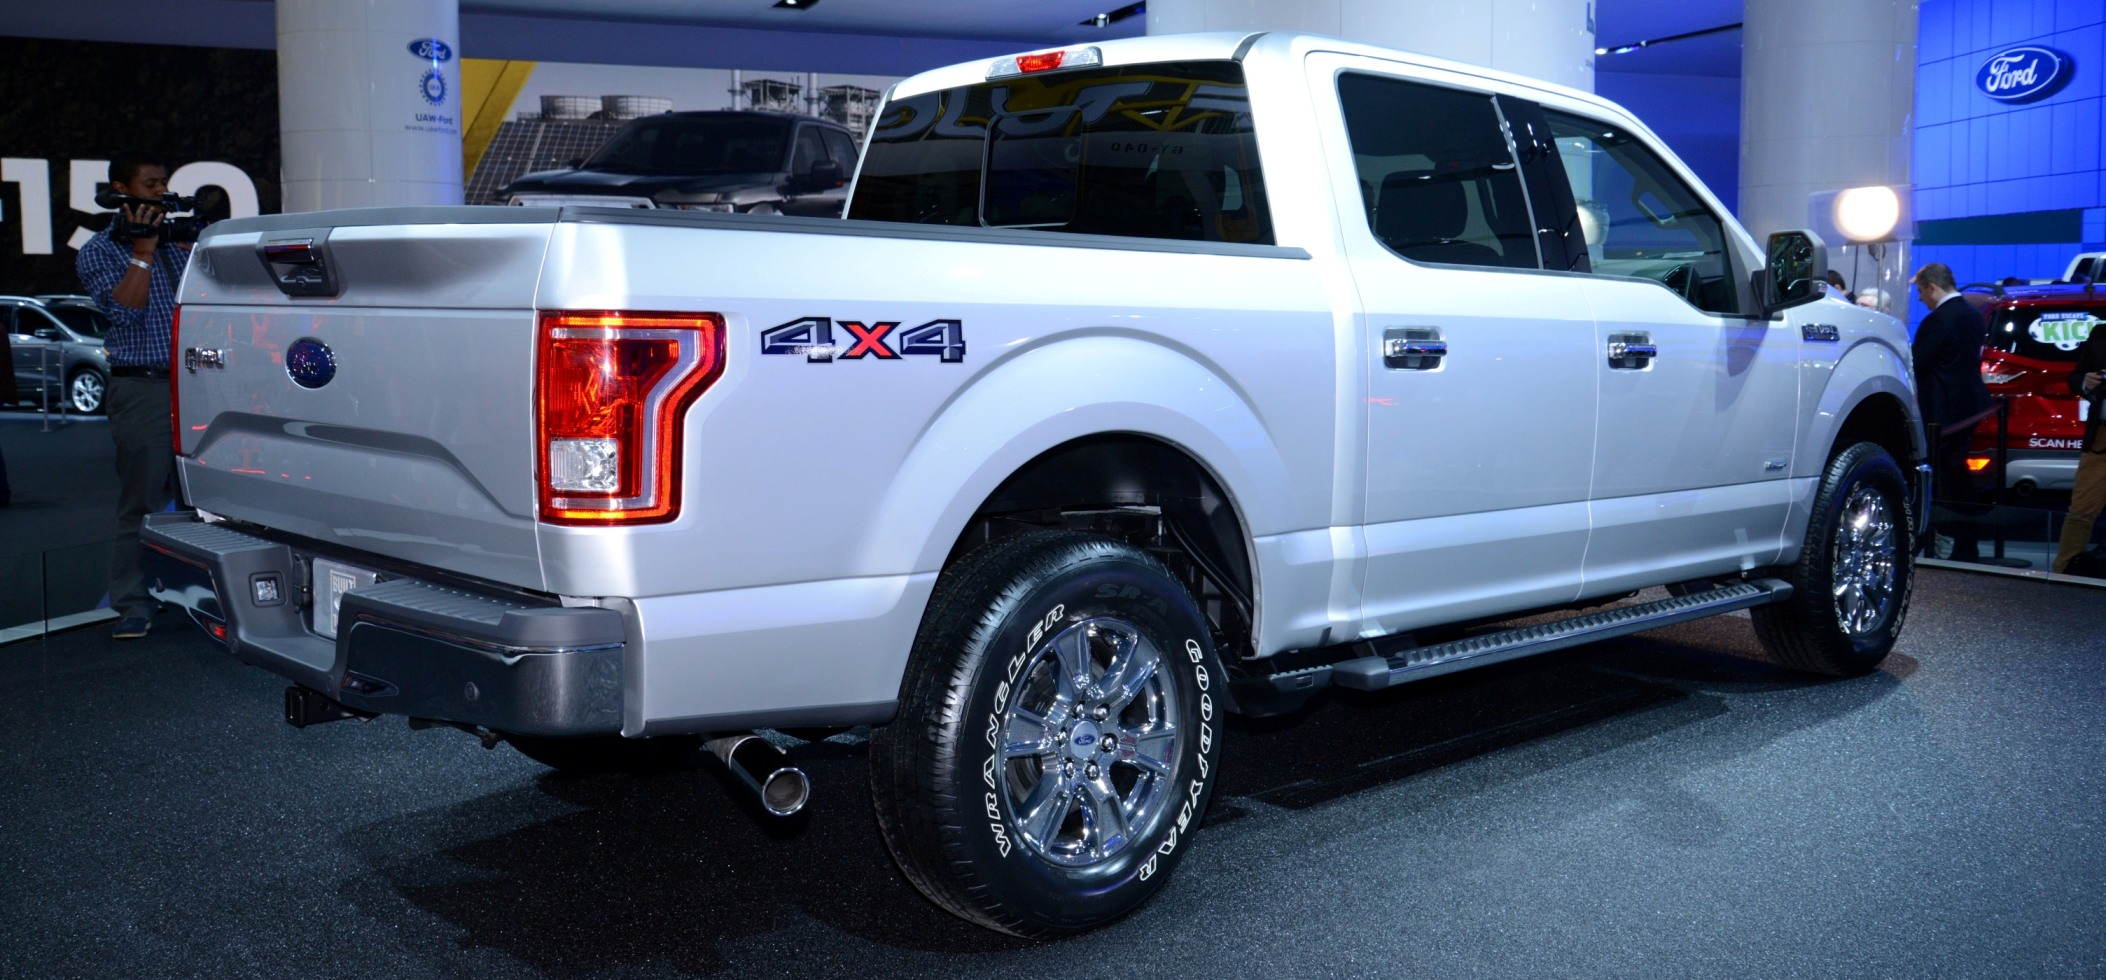 Ford motor company has reached a new deal with alcoa that will expand its aluminum use in the f 150 pickup as well as in other vehicles